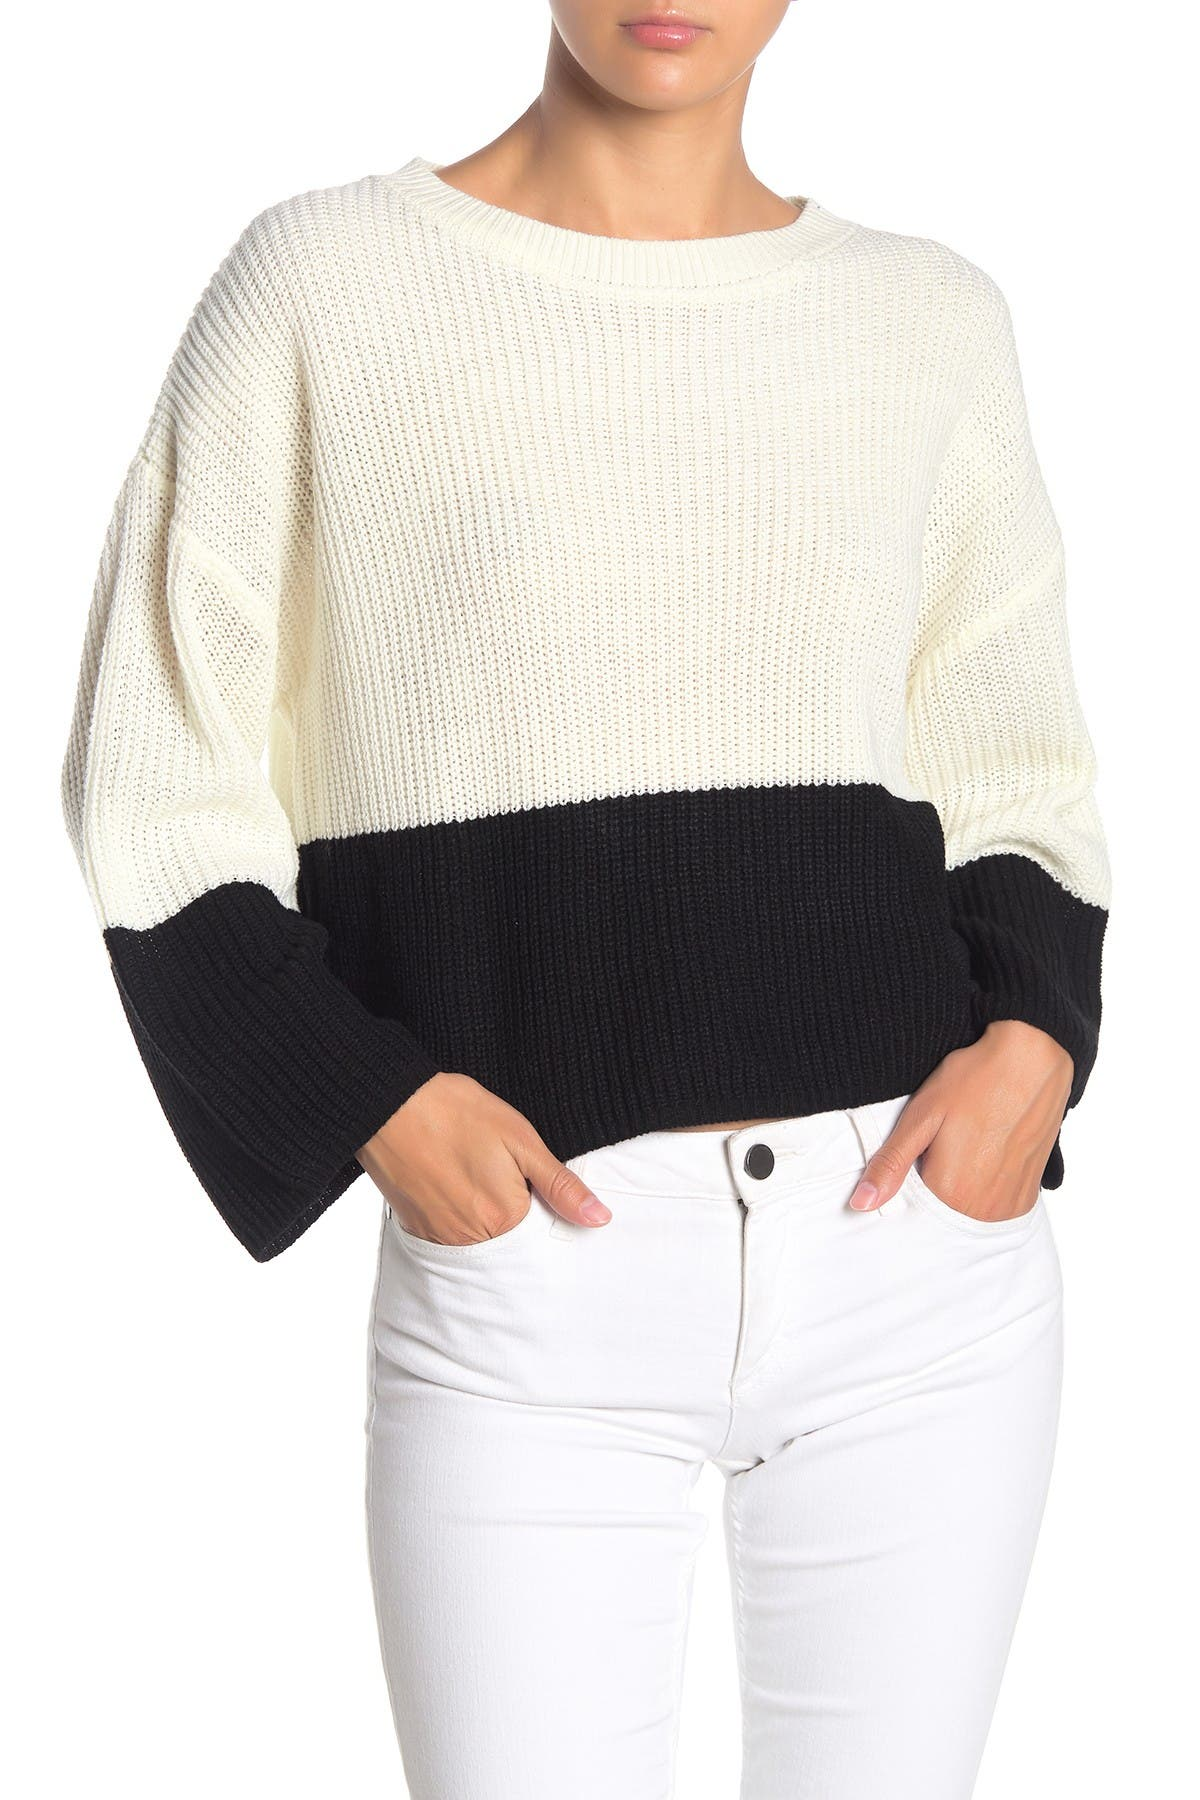 Image of Love by Design Colorblock Knit Pullover Sweater